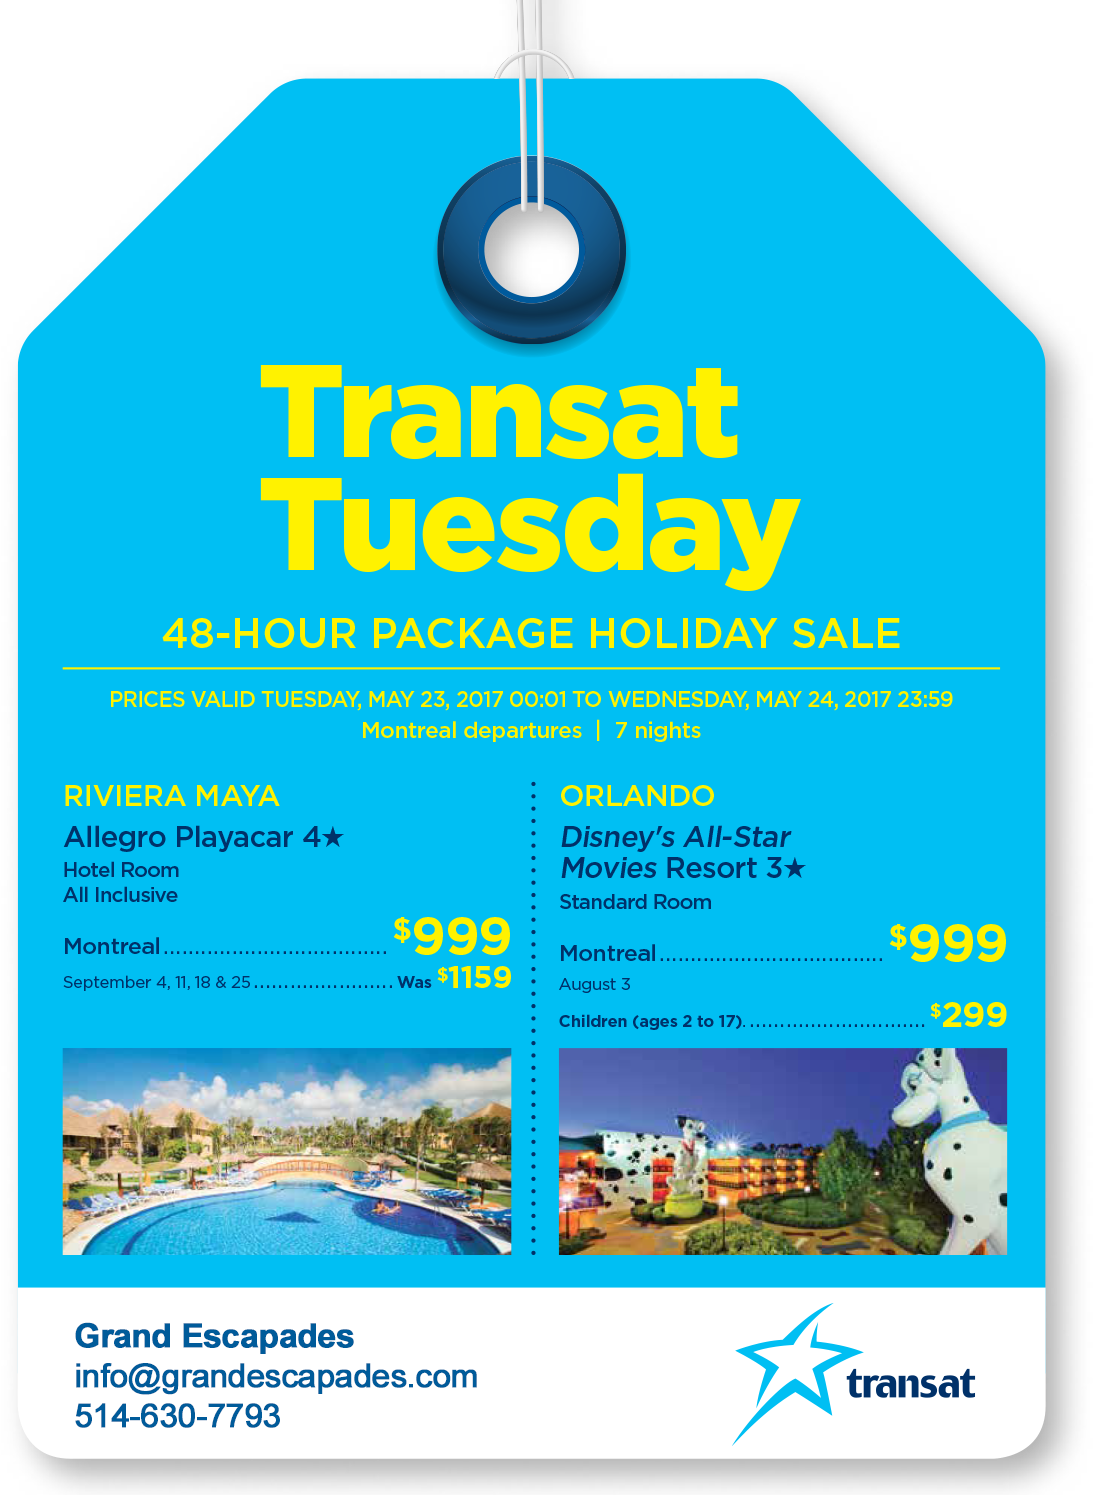 Transat Tuesday 48-Hour Sale - The hottest deals every Tuesday with Grand Escapades and Transat